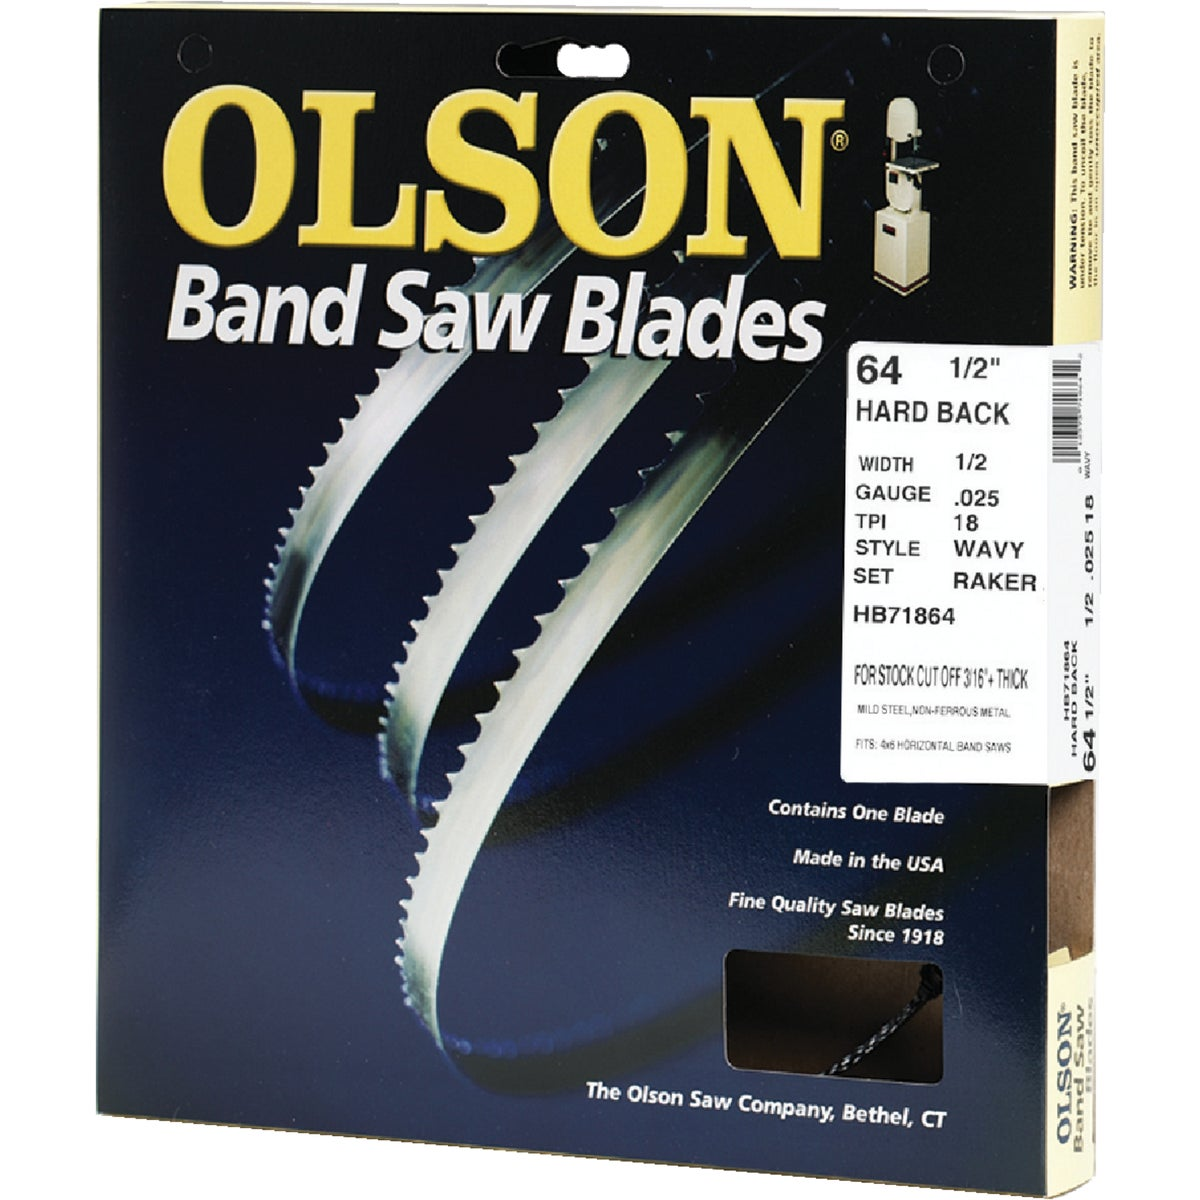 64-1/2X1/2 18T BLADE - 71864 by Olson Saw Co